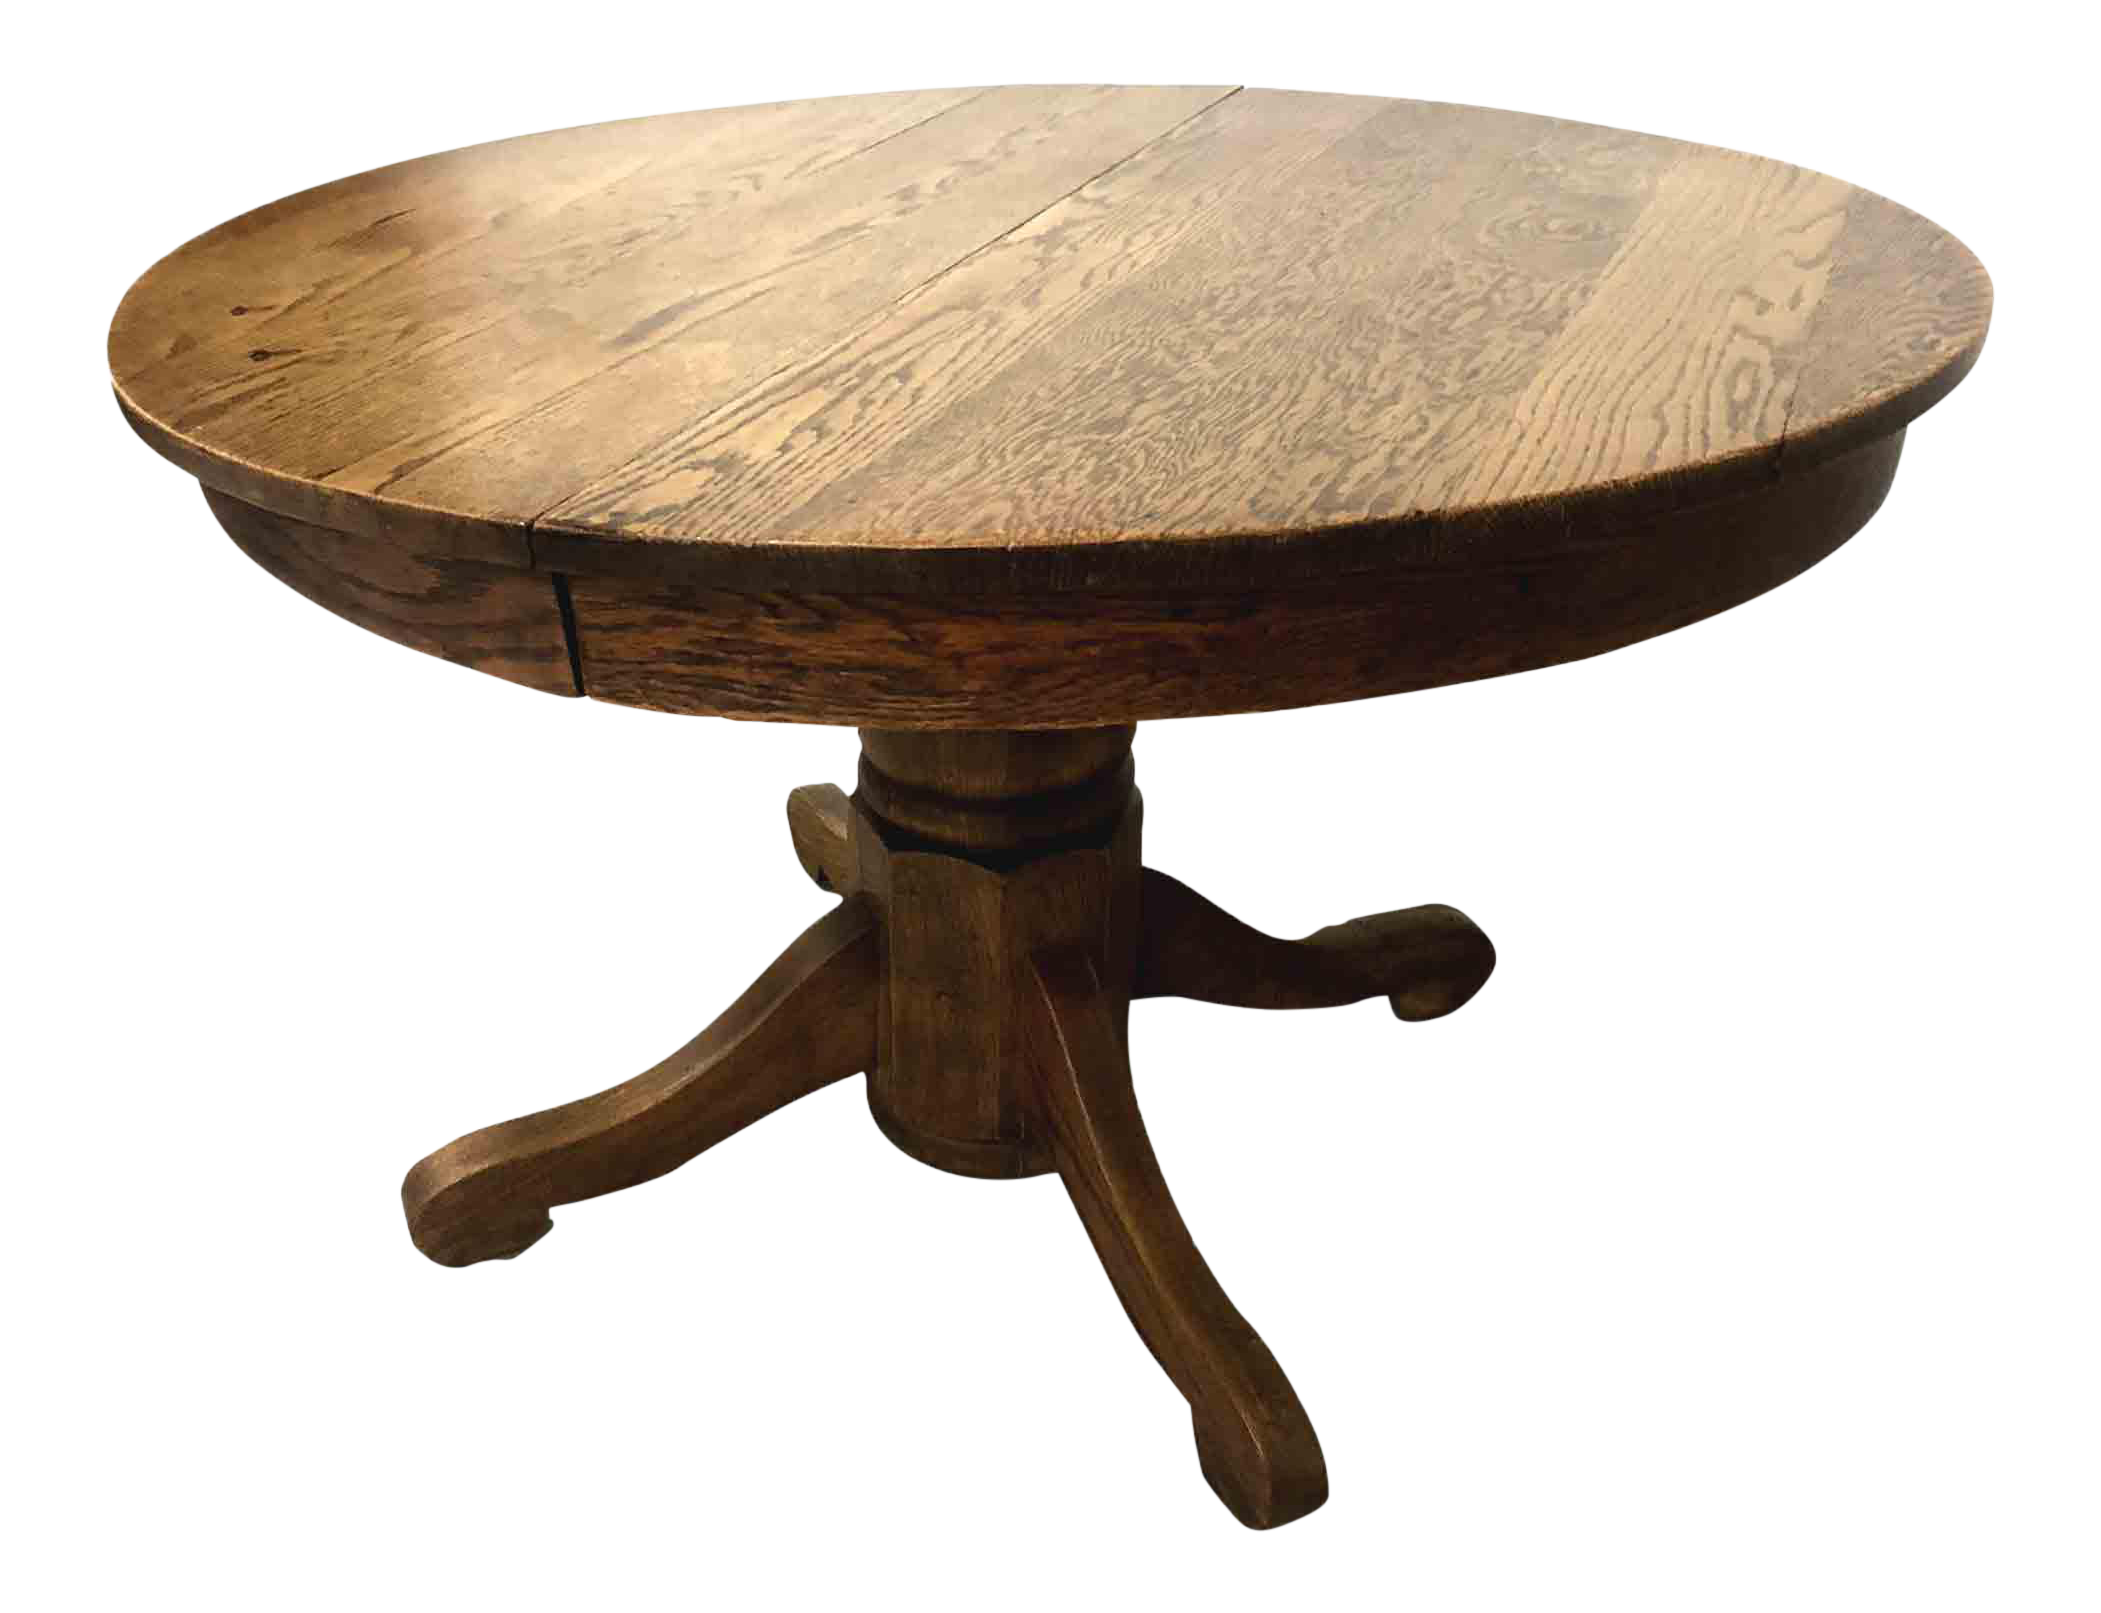 Antique Country Oak Round Pedestal Dining Table Chairish